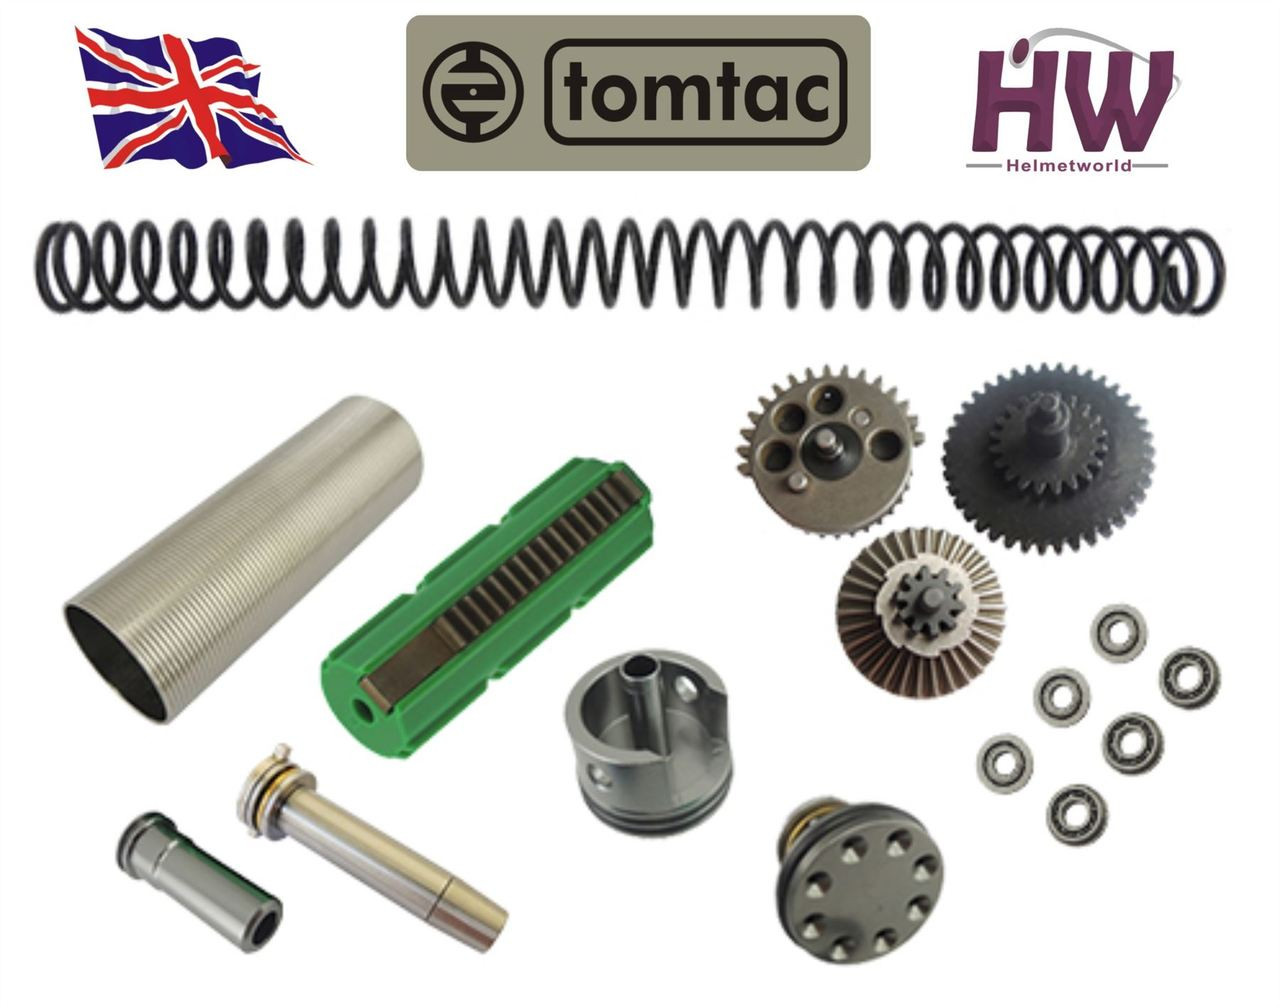 AIRSOFT LONEX AEG GEARBOX UPGRADE SPRING SET VER 2 3 UK DELIVERY